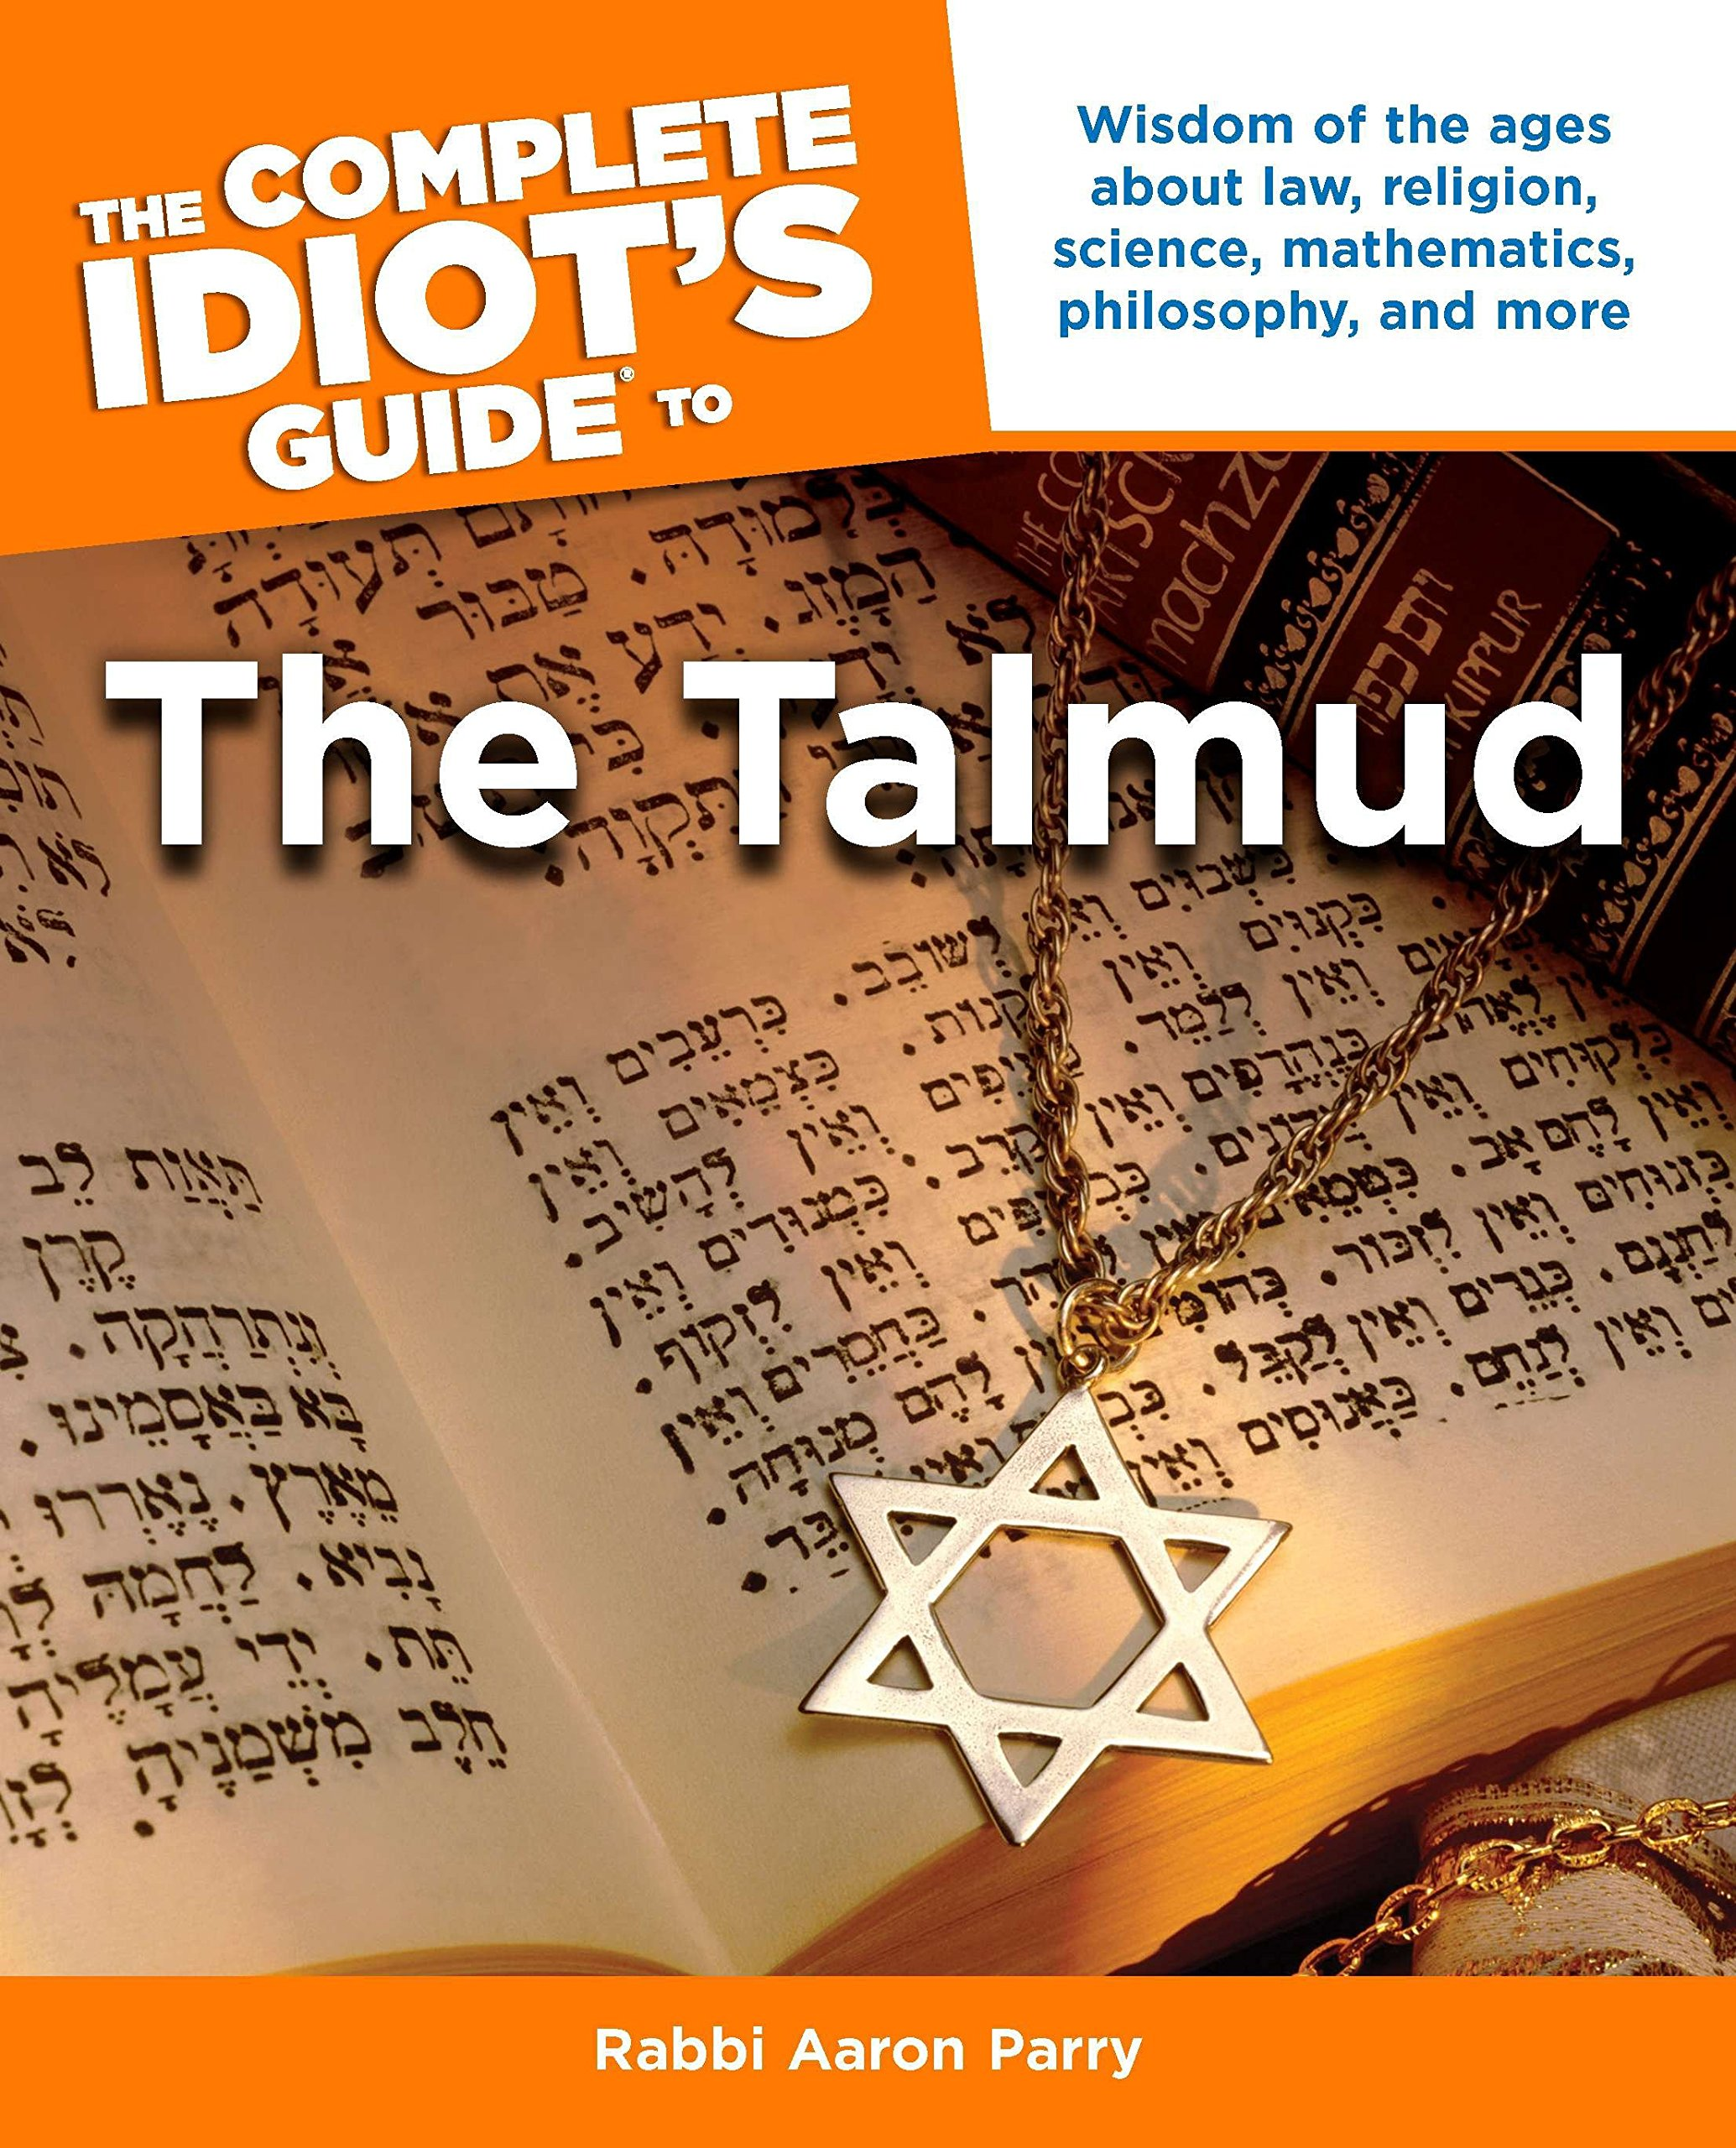 The Complete Idiot's Guide To The Talmud  Wisdom Of The Ages About Law Religion Science Mathematics Philosophy And Mo